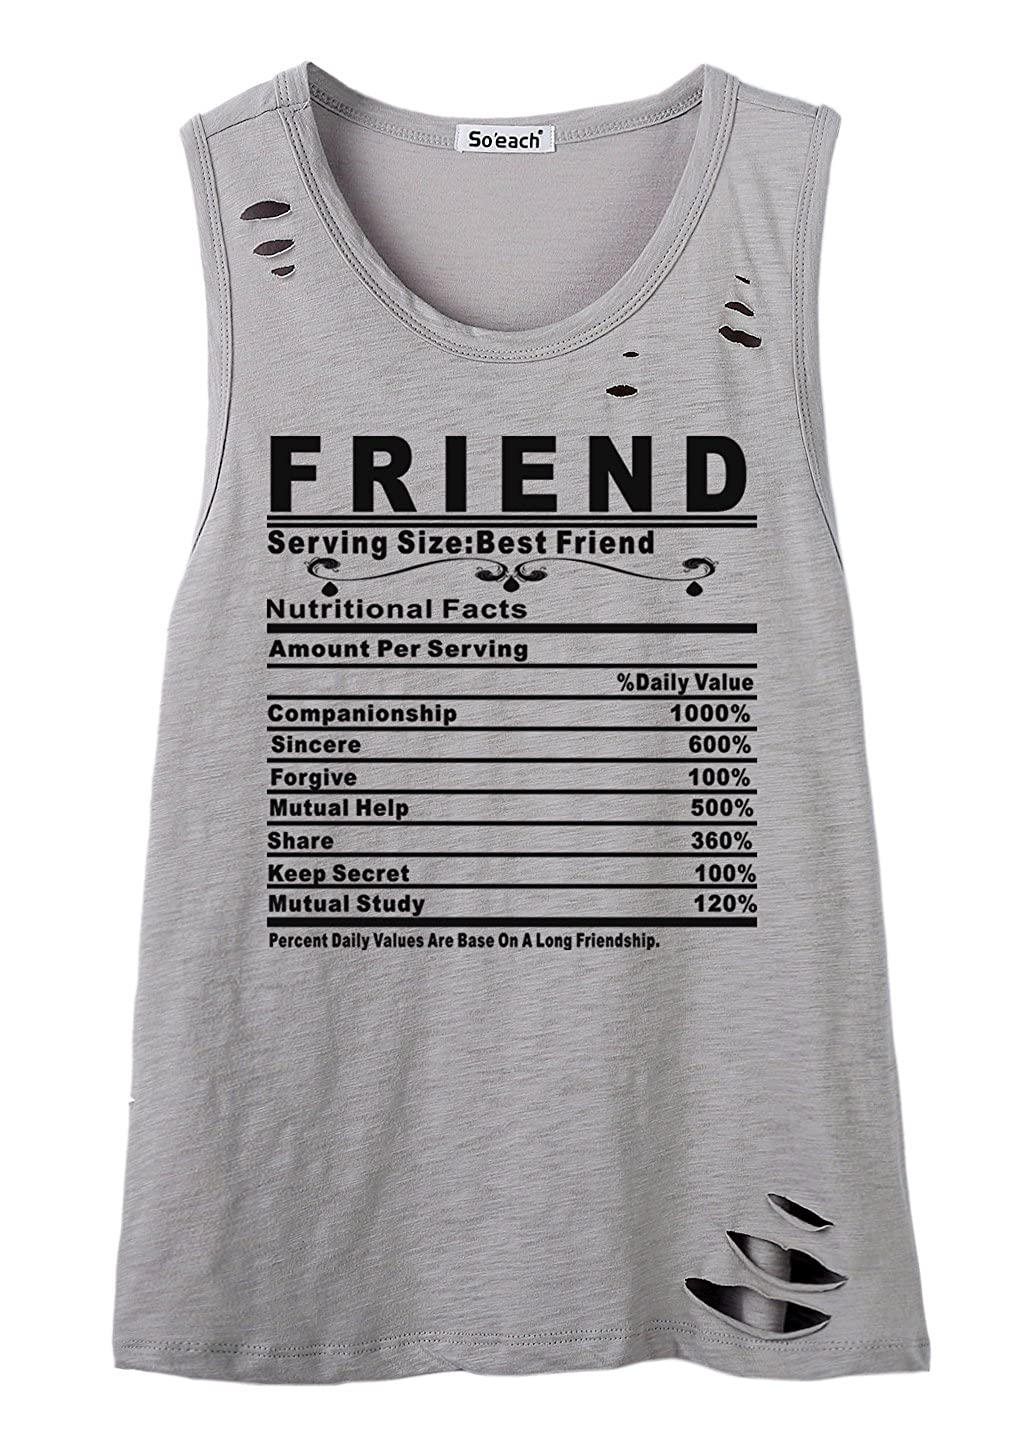 Clothing, Shoes & Accessories Men's Clothing Under Armour Usmc Sleeveless T-shirt Men's Large White Good Reputation Over The World